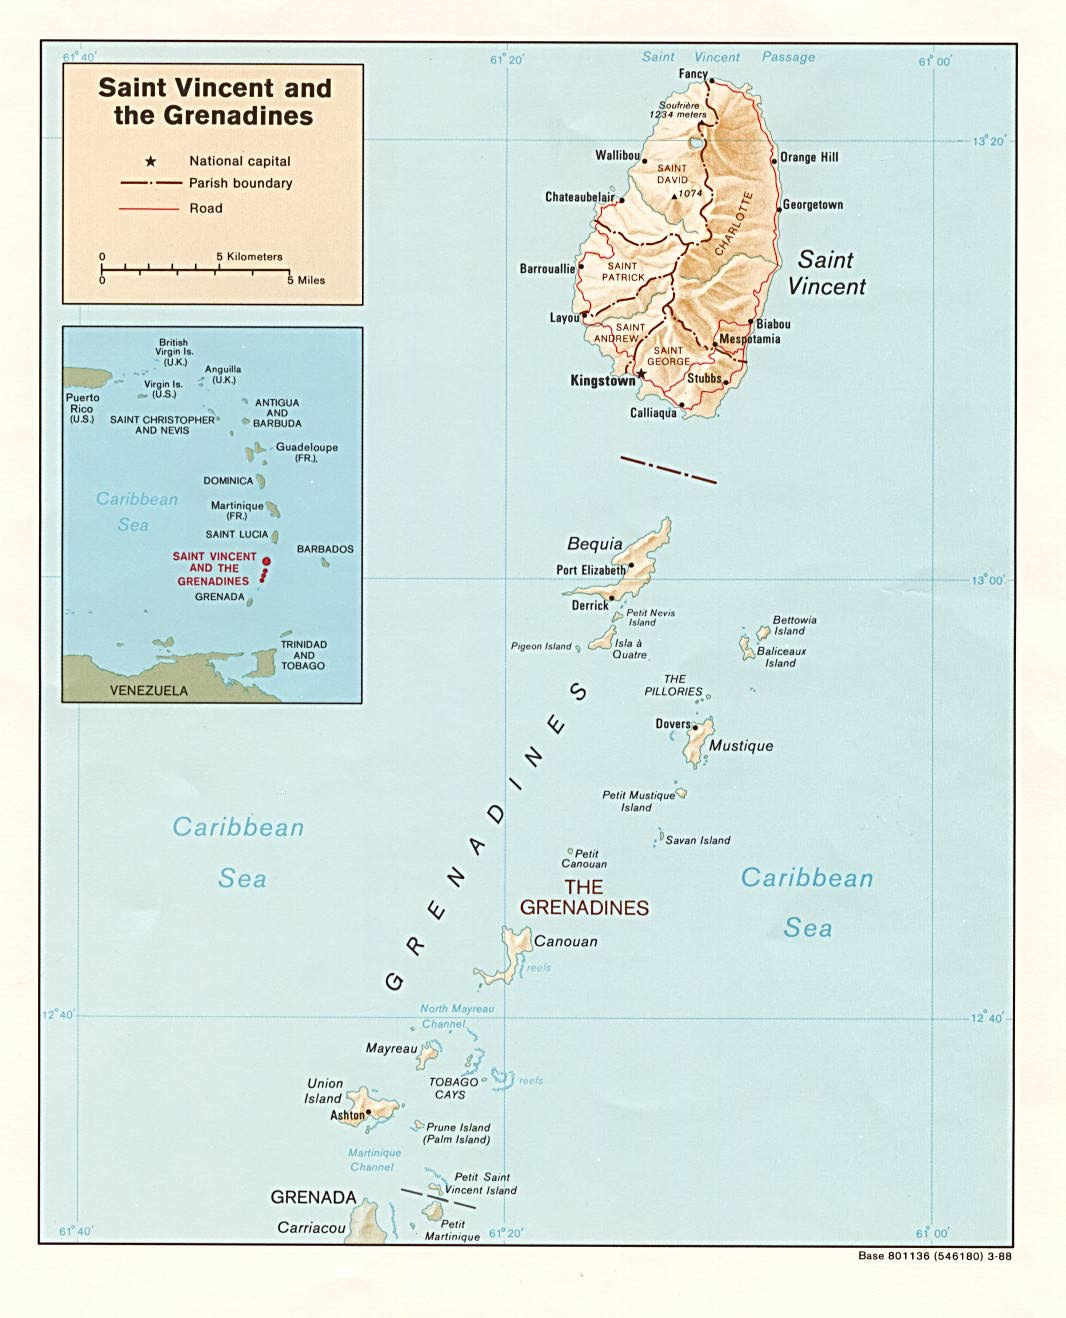 Saint Vincent and the Grenadines Shaded Relief Map